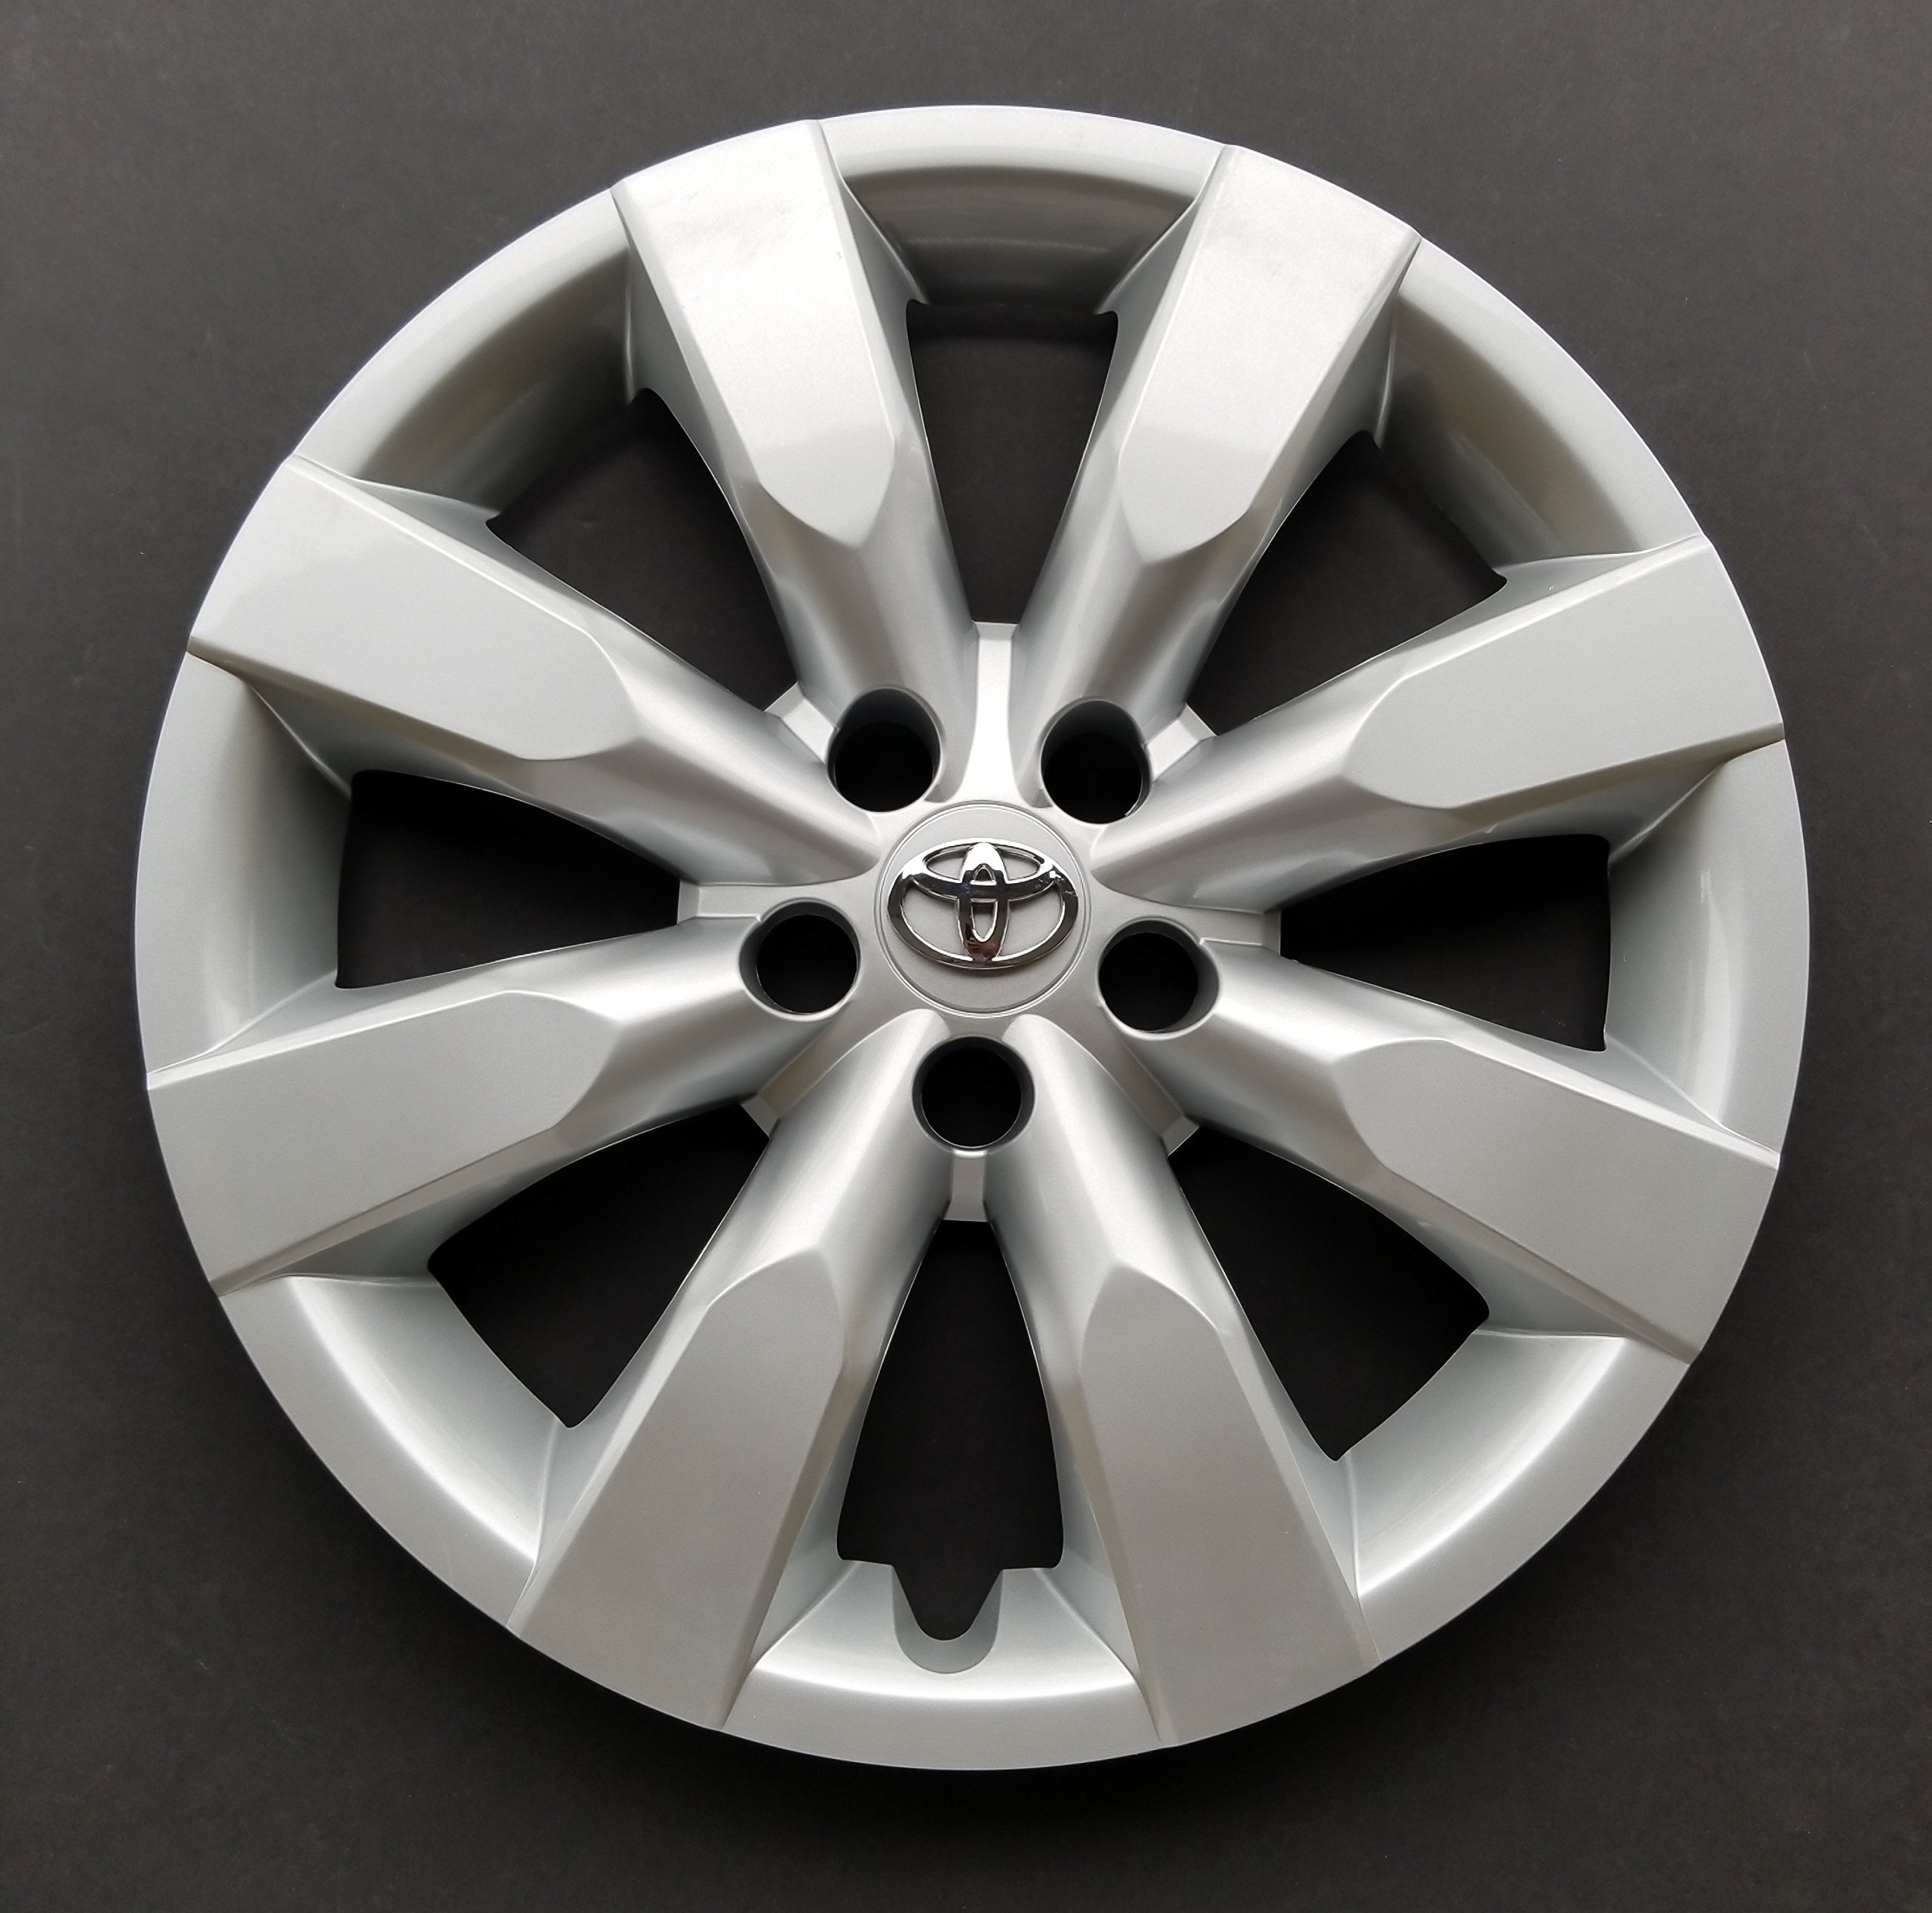 MARROW One New Replacement Fits 2014 2015 2016 Toyota Corolla Style 16'' Wheel Cover Hubcap,8 Spoke,Silver,Standard Leg